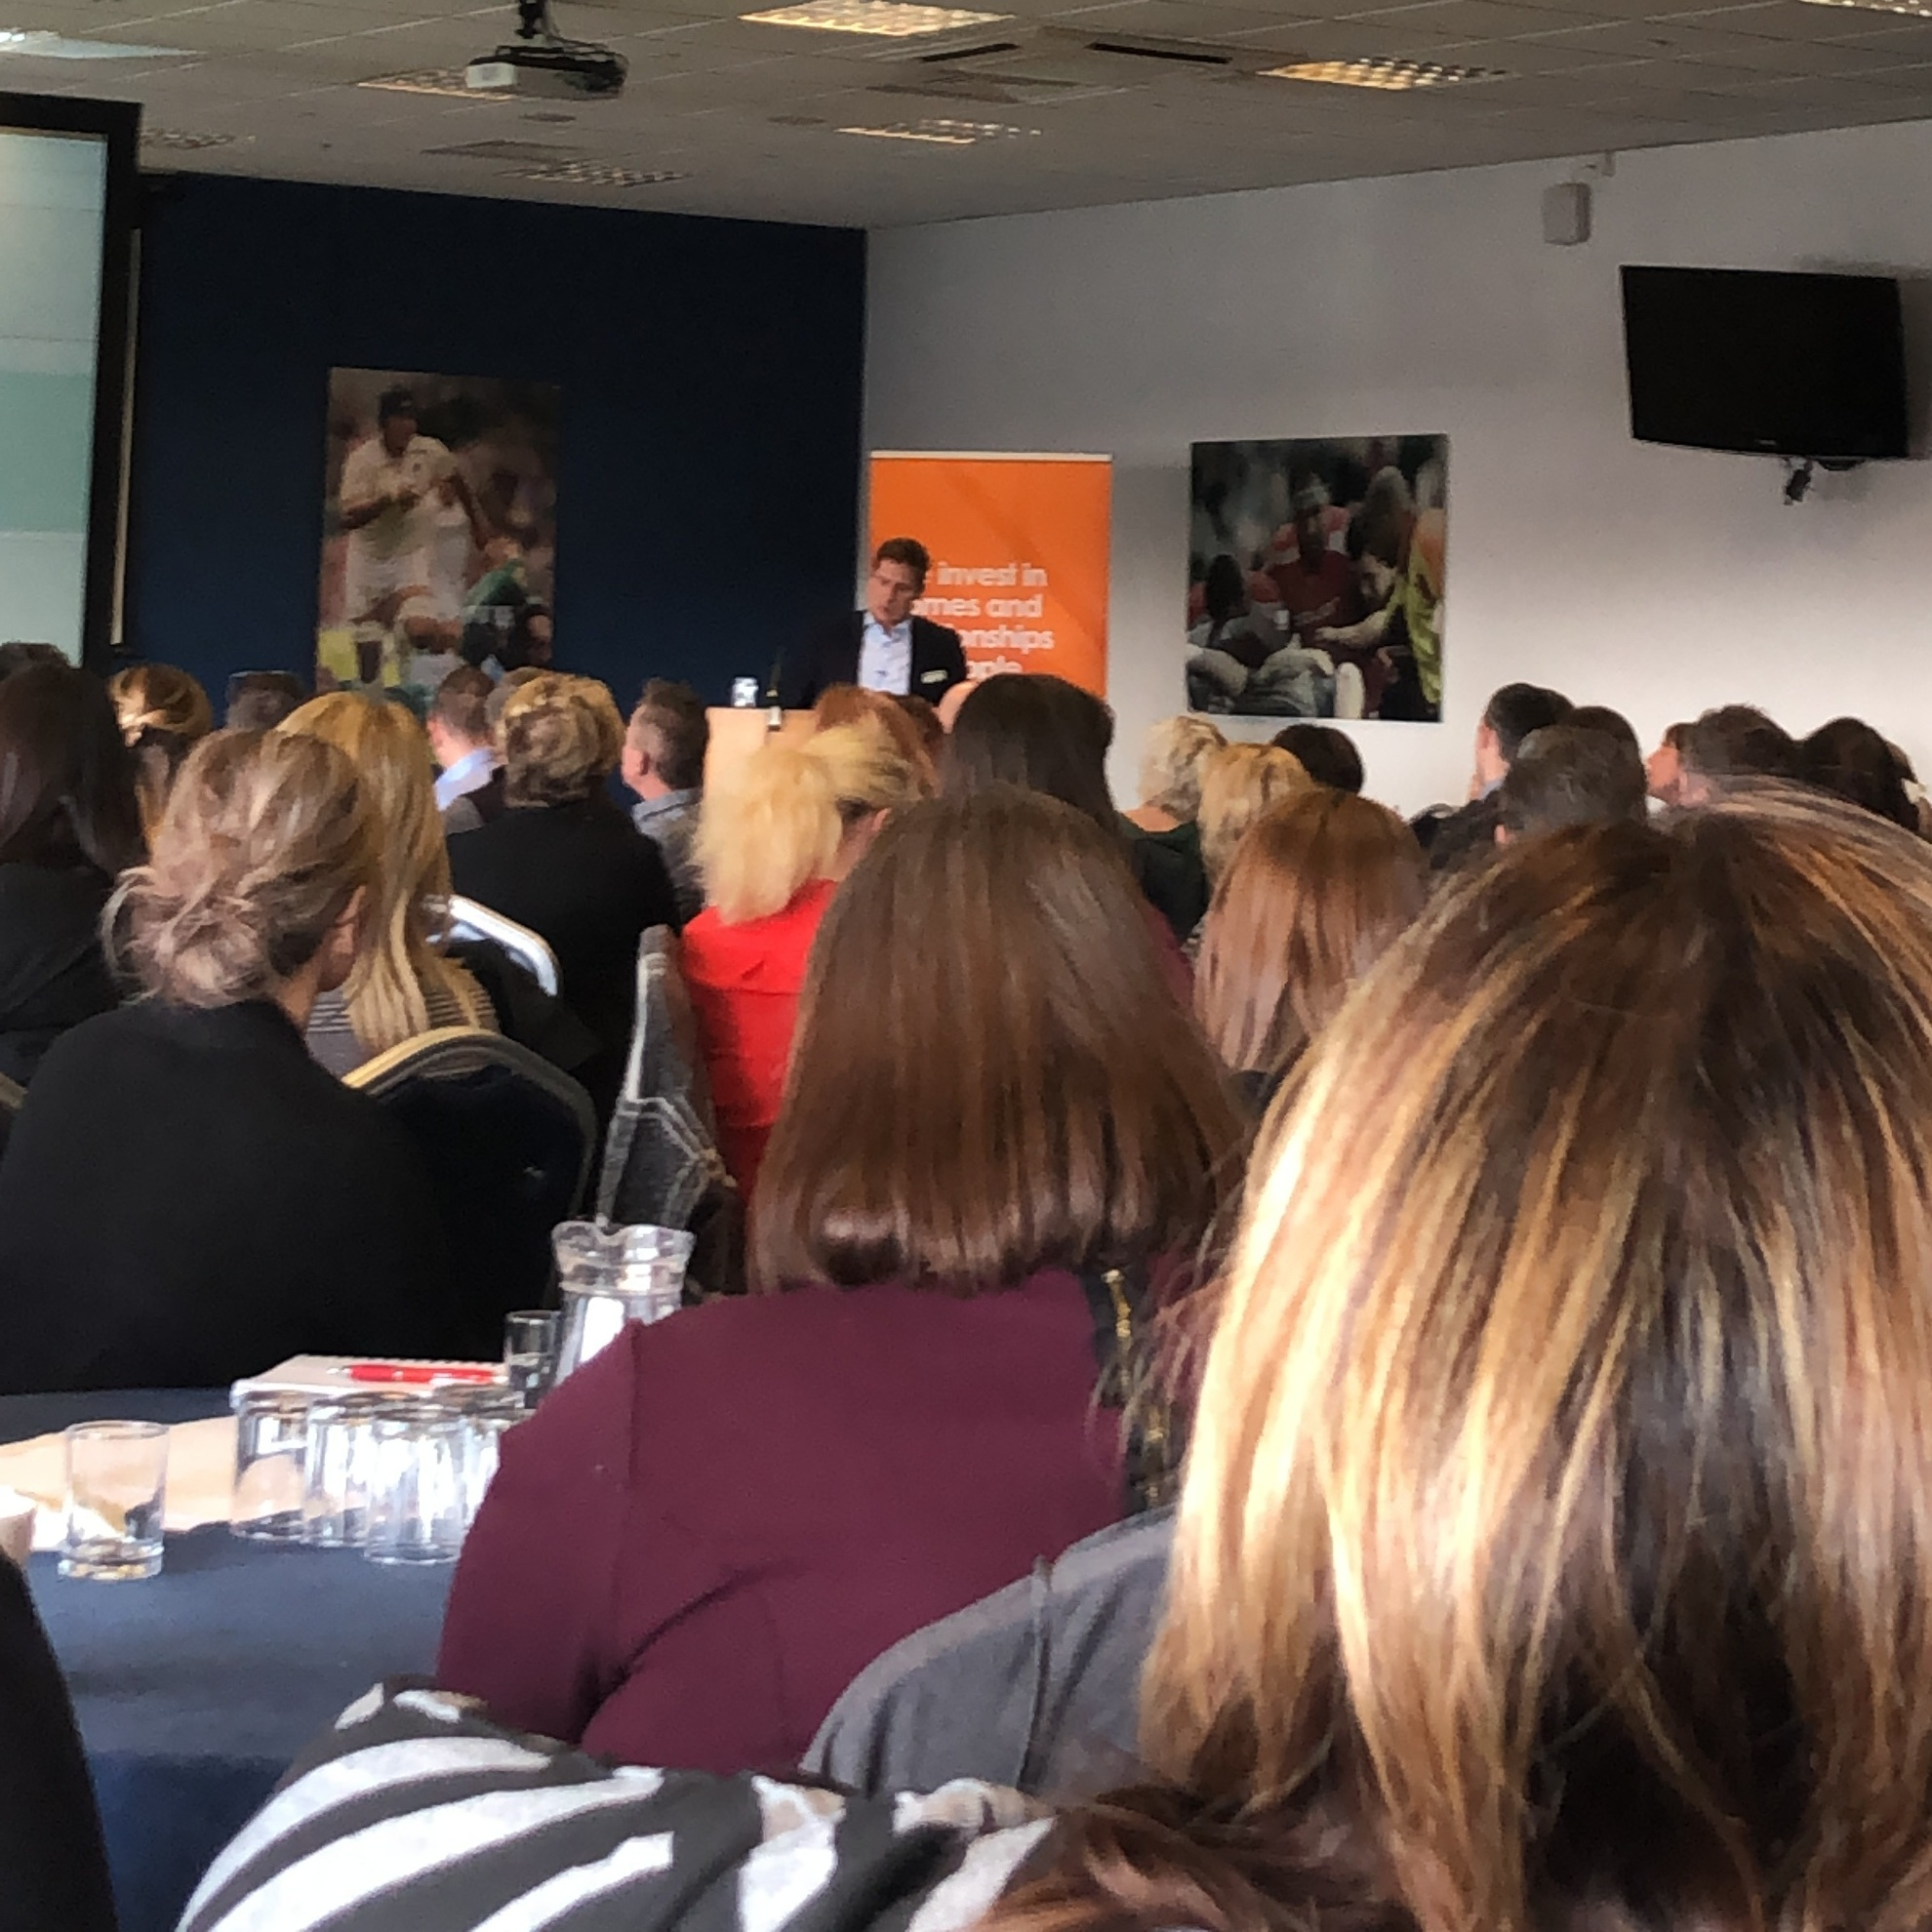 CEO Robert Nettleton opened the day with an inspirational presentation on our new strategy.